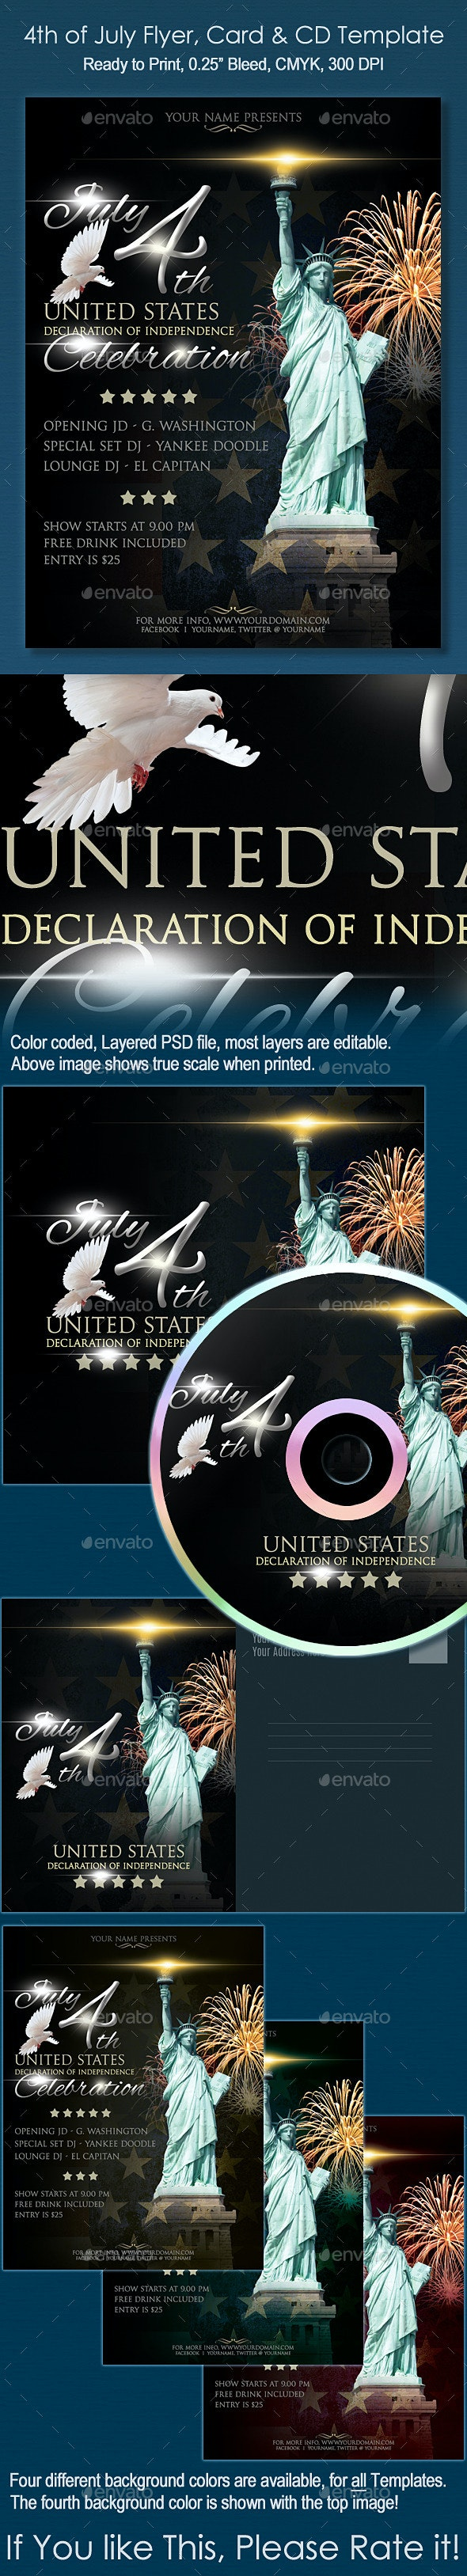 4th of July Flyer, CD and Card Template - Events Flyers